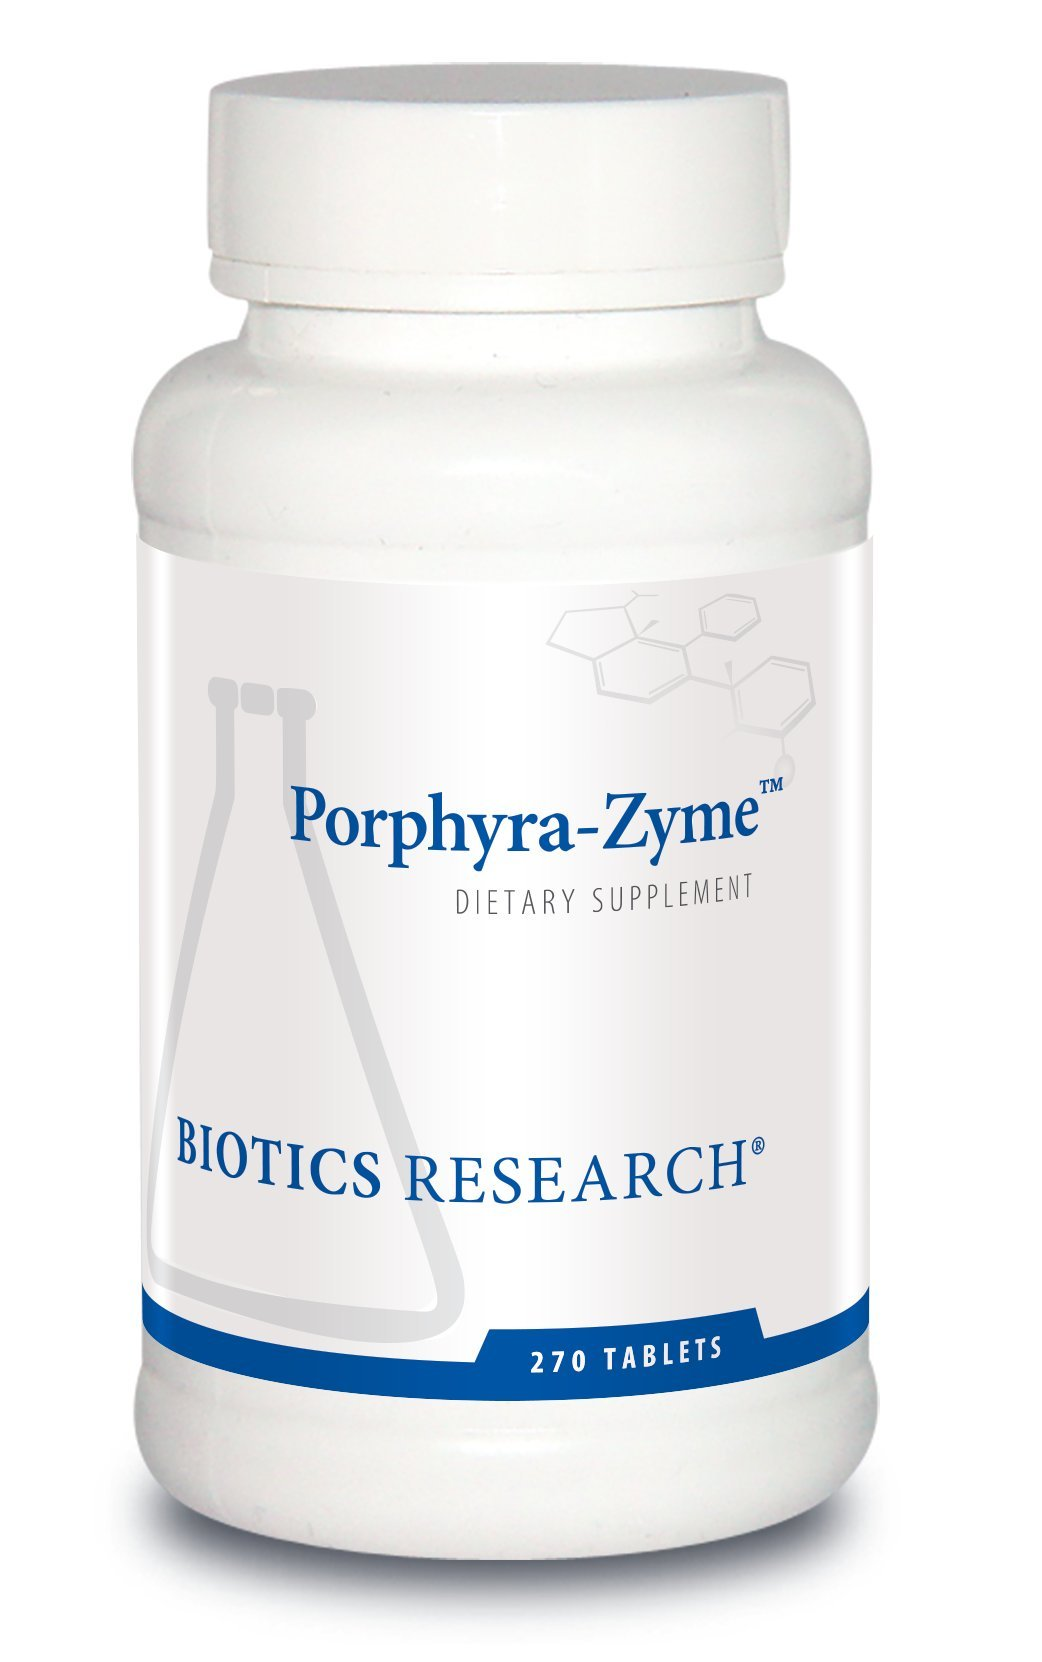 Biotics Research Porphyra-Zyme™ - Chlorophyll Concentrate. Heavy Metal Binding Capacity. Detoxification. 270Tabs